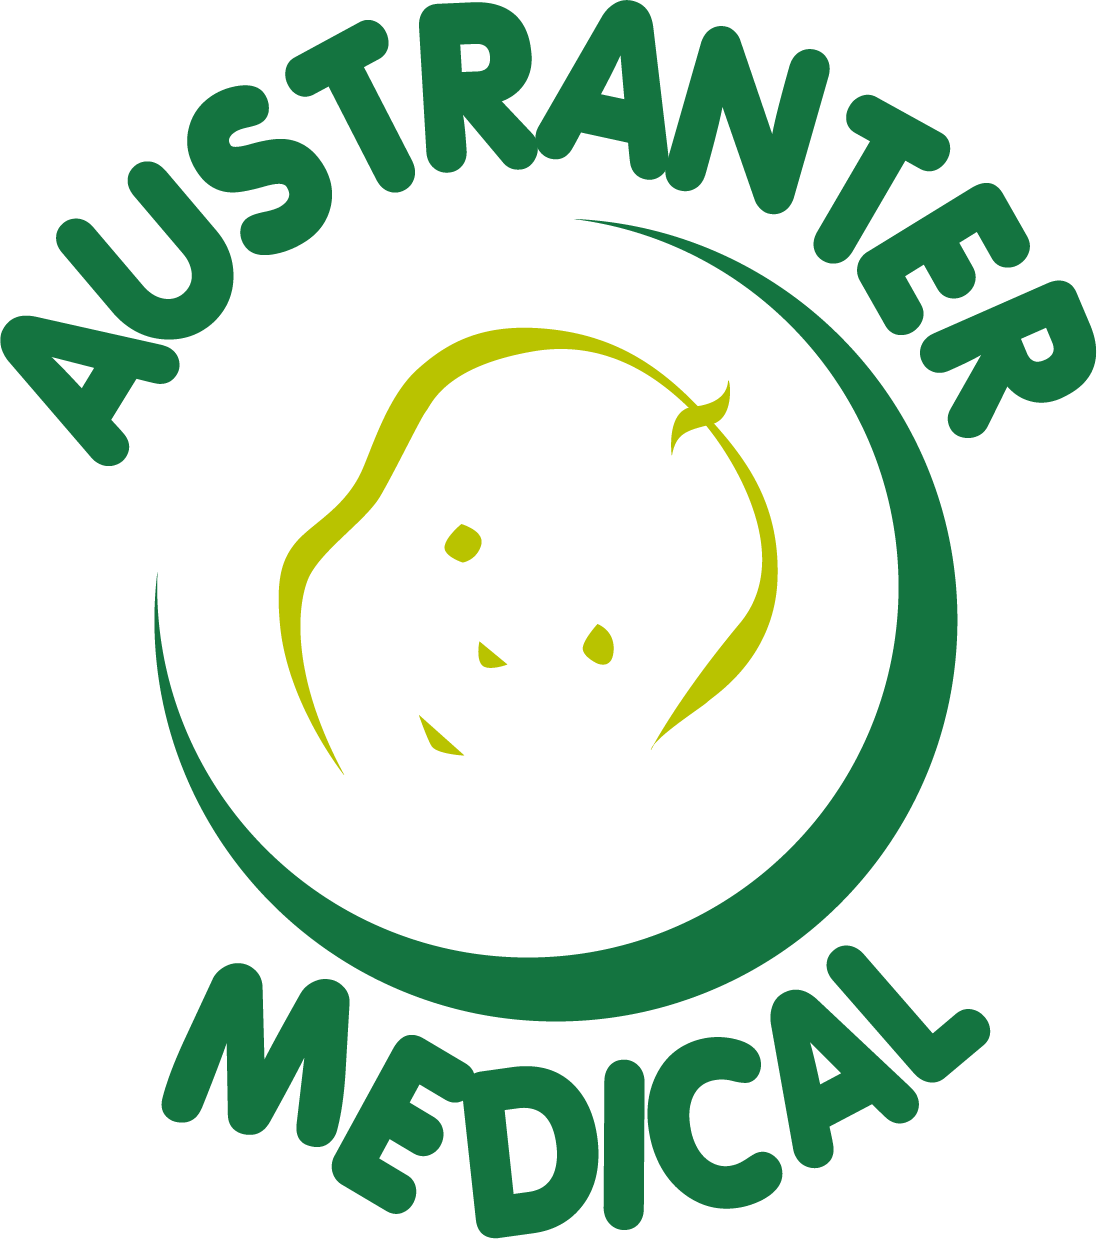 Austranter Medical